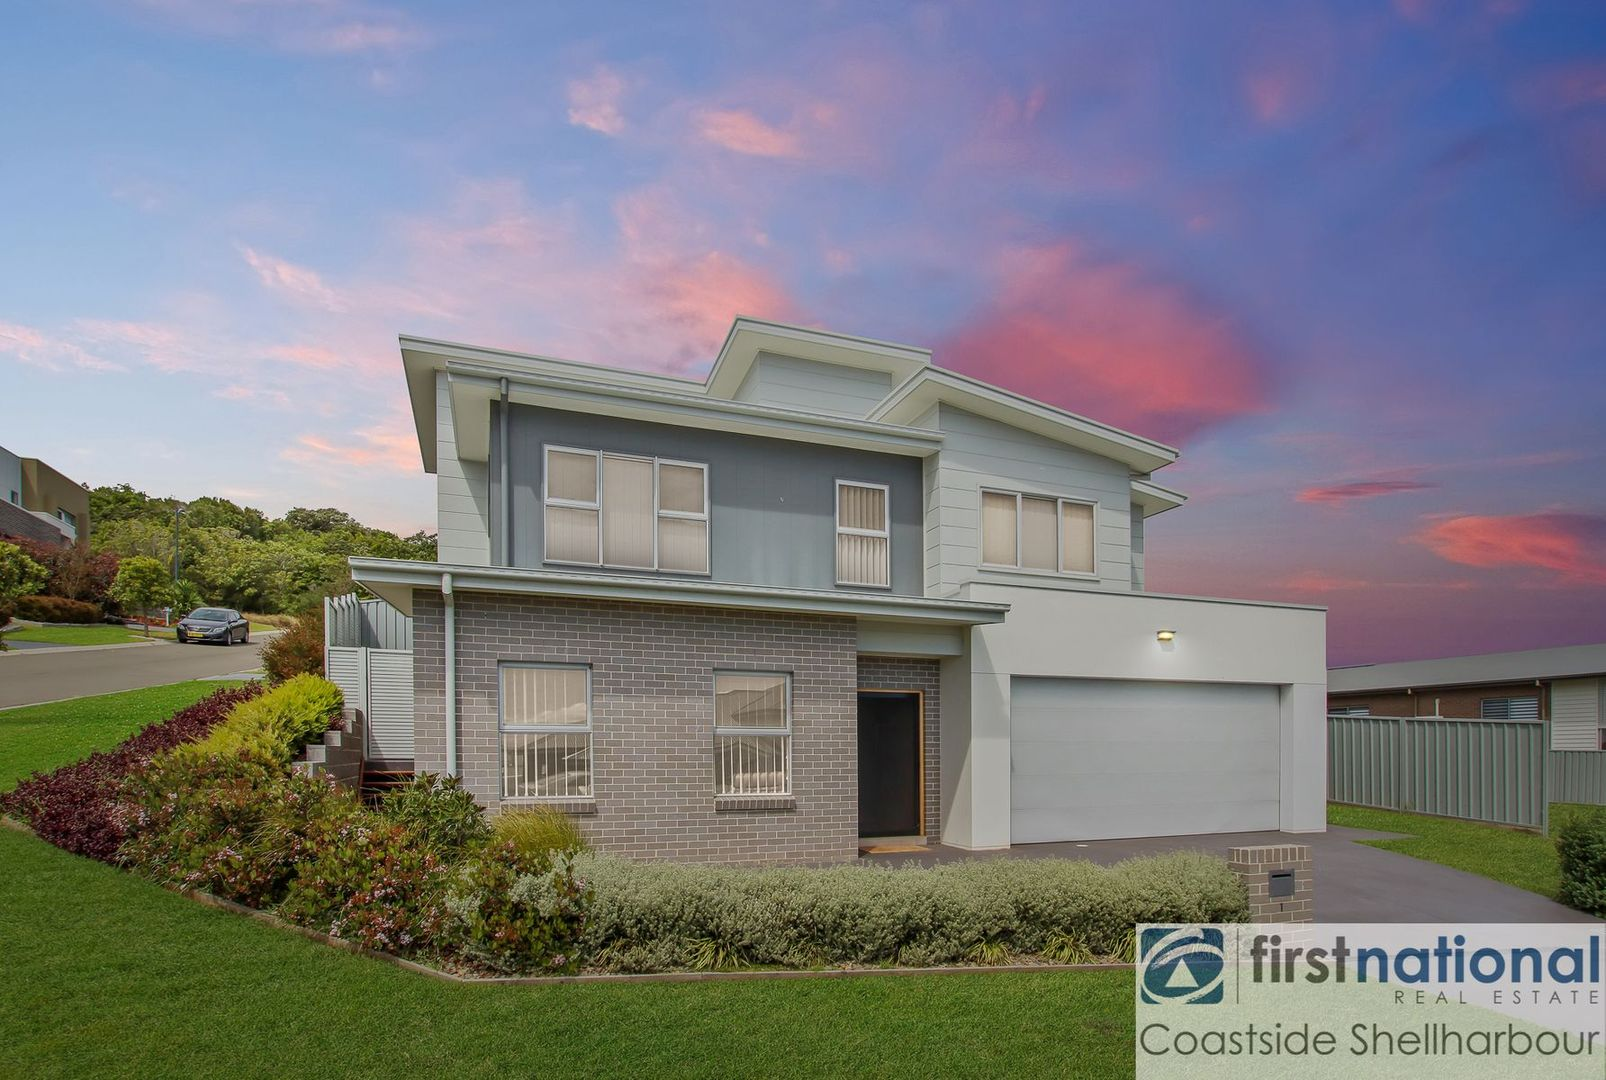 1 National Avenue, Shell Cove NSW 2529, Image 0